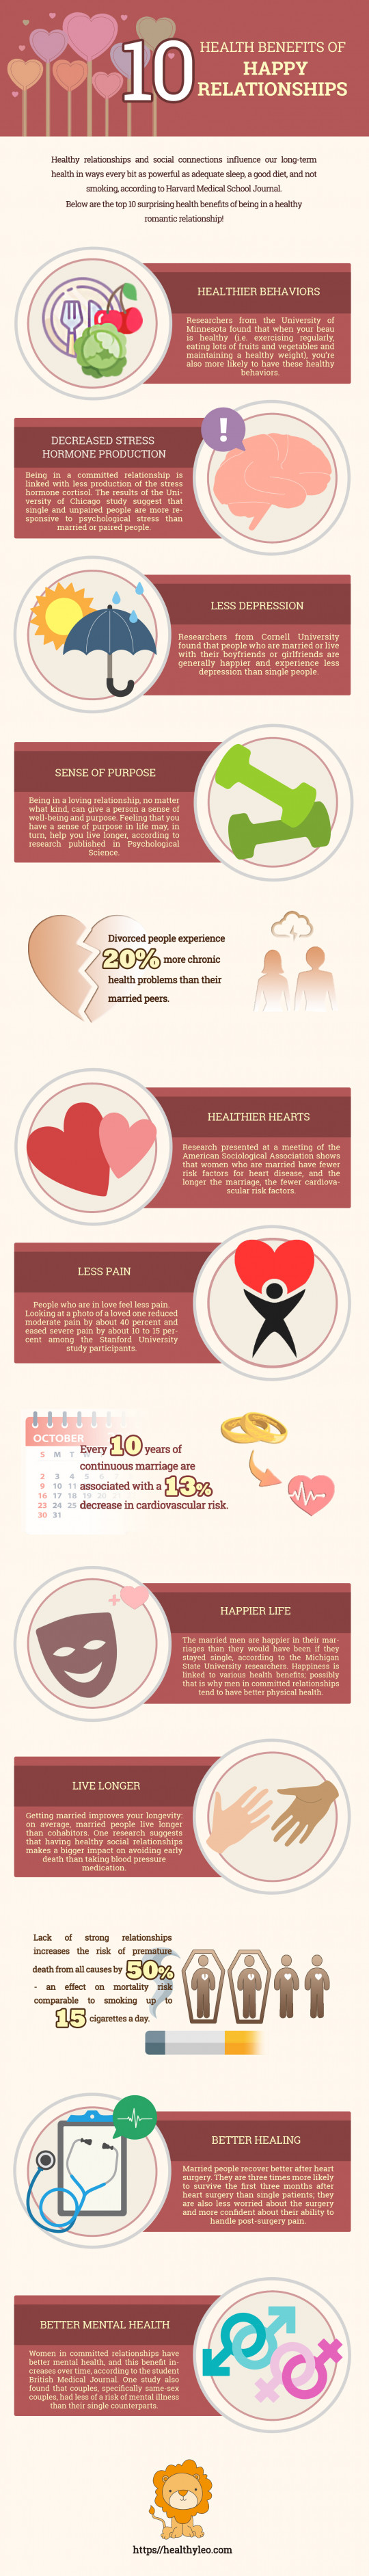 10 Health Benefits of Happy Relationships